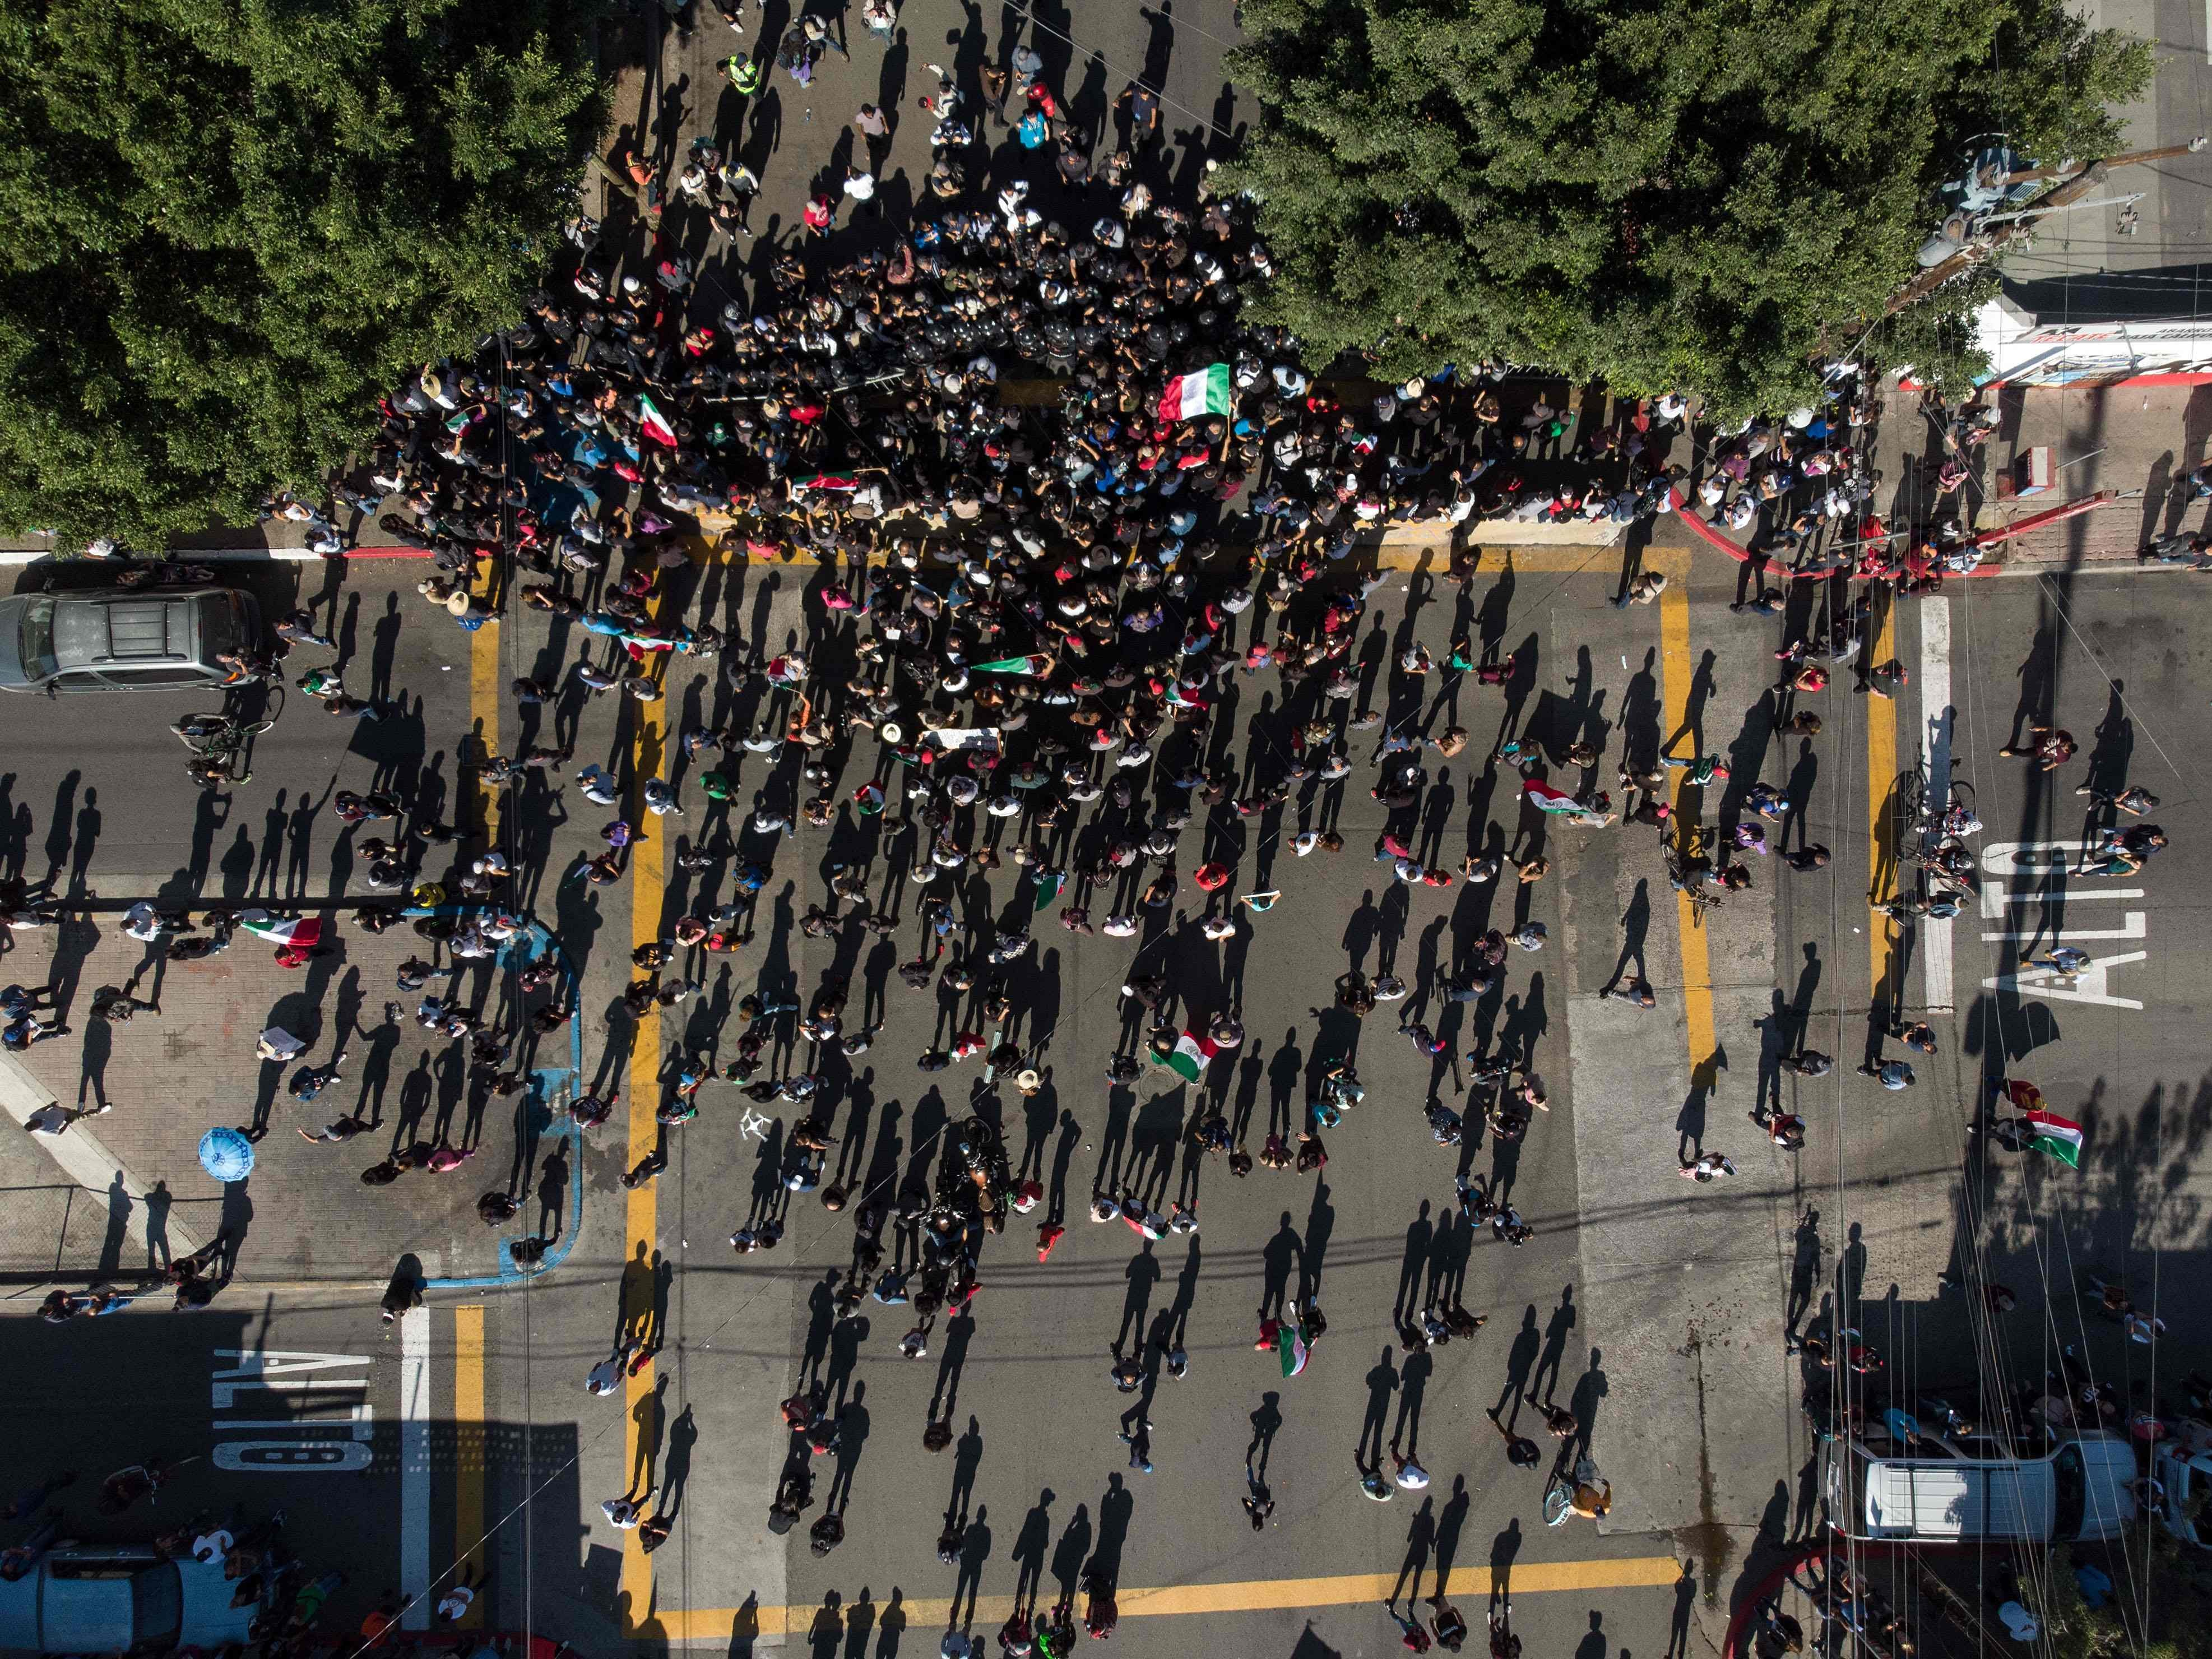 Aerial view of people demonstrating against the Central American migrants in Tijuana, blocked by riot police near a temporary shelter, on Nov. 18, 2018, in Tijuana, Mexico.